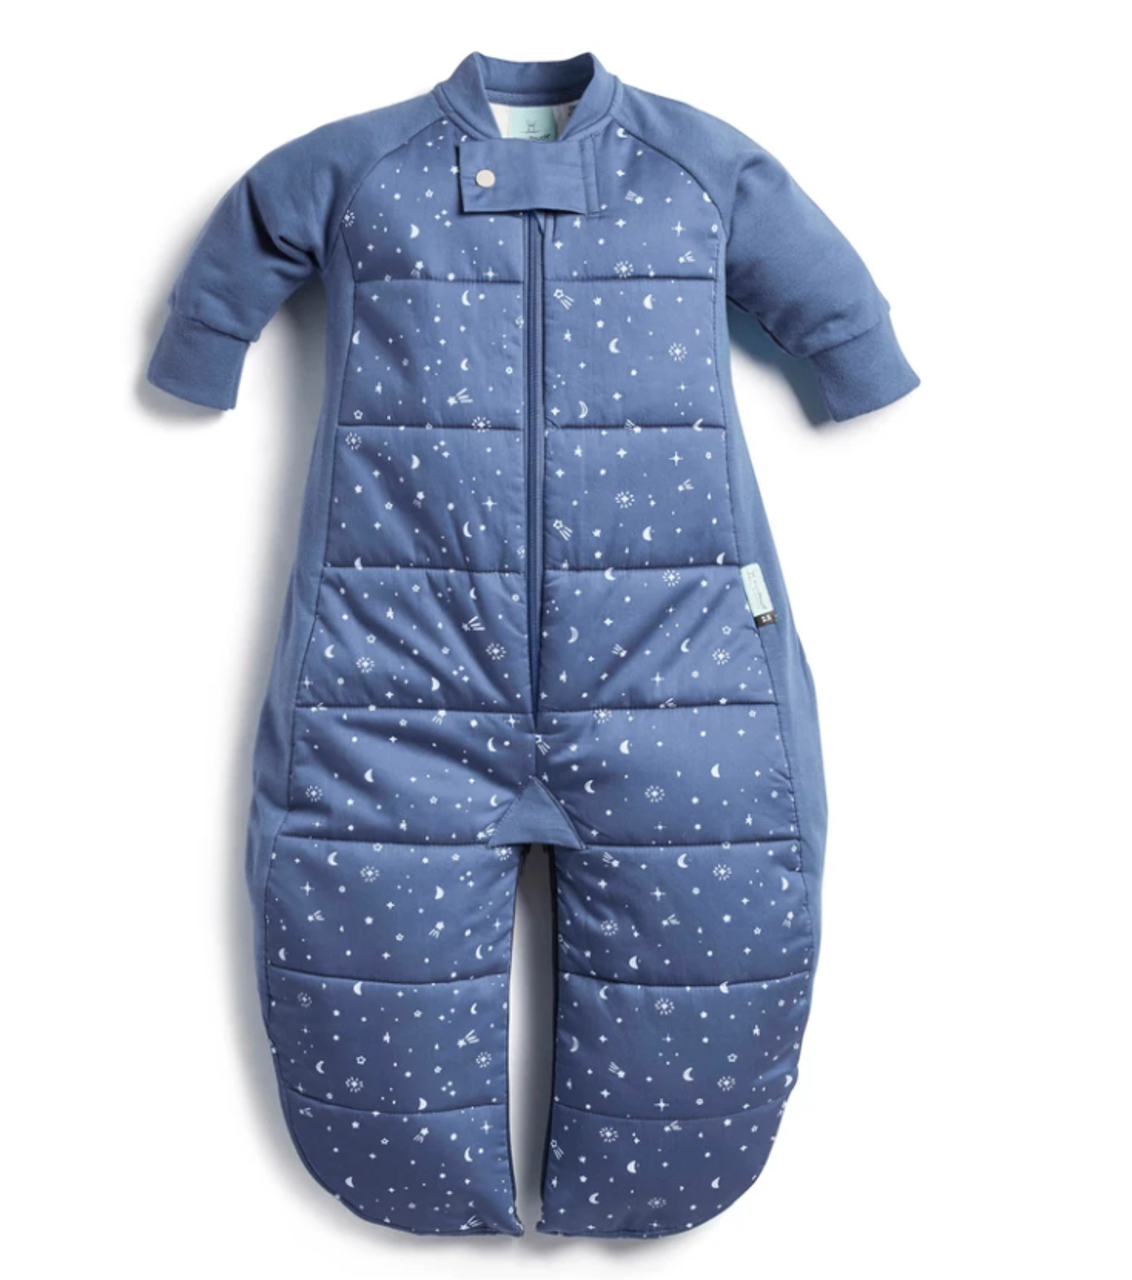 Ergopouch Sleepsuit Bag 2.5 Tog 3-12 Months at Baby Barn Discounts